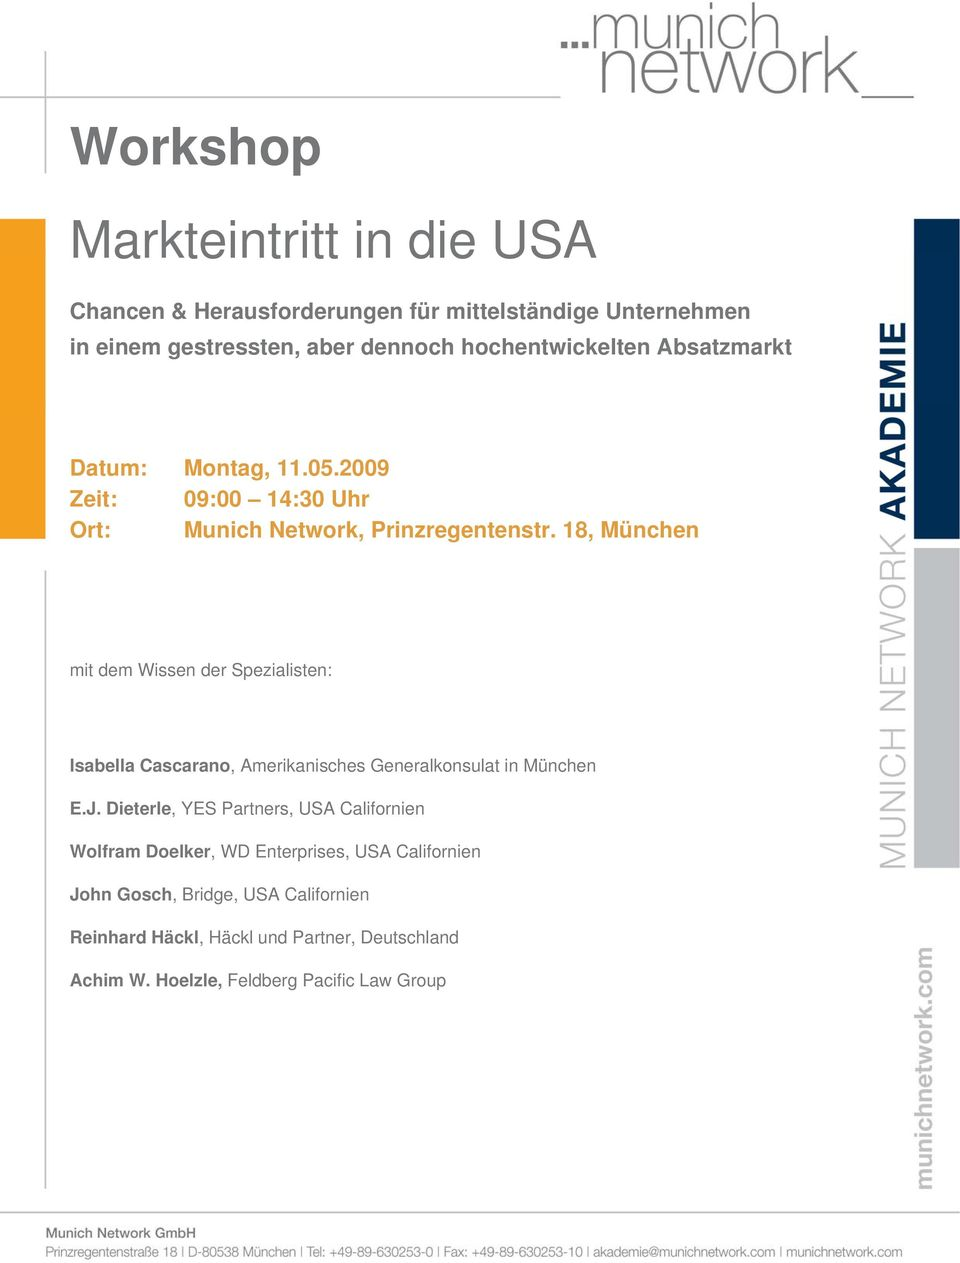 Dieterle, YES Partners, USA Californien Wolfram Doelker, WD Enterprises, USA